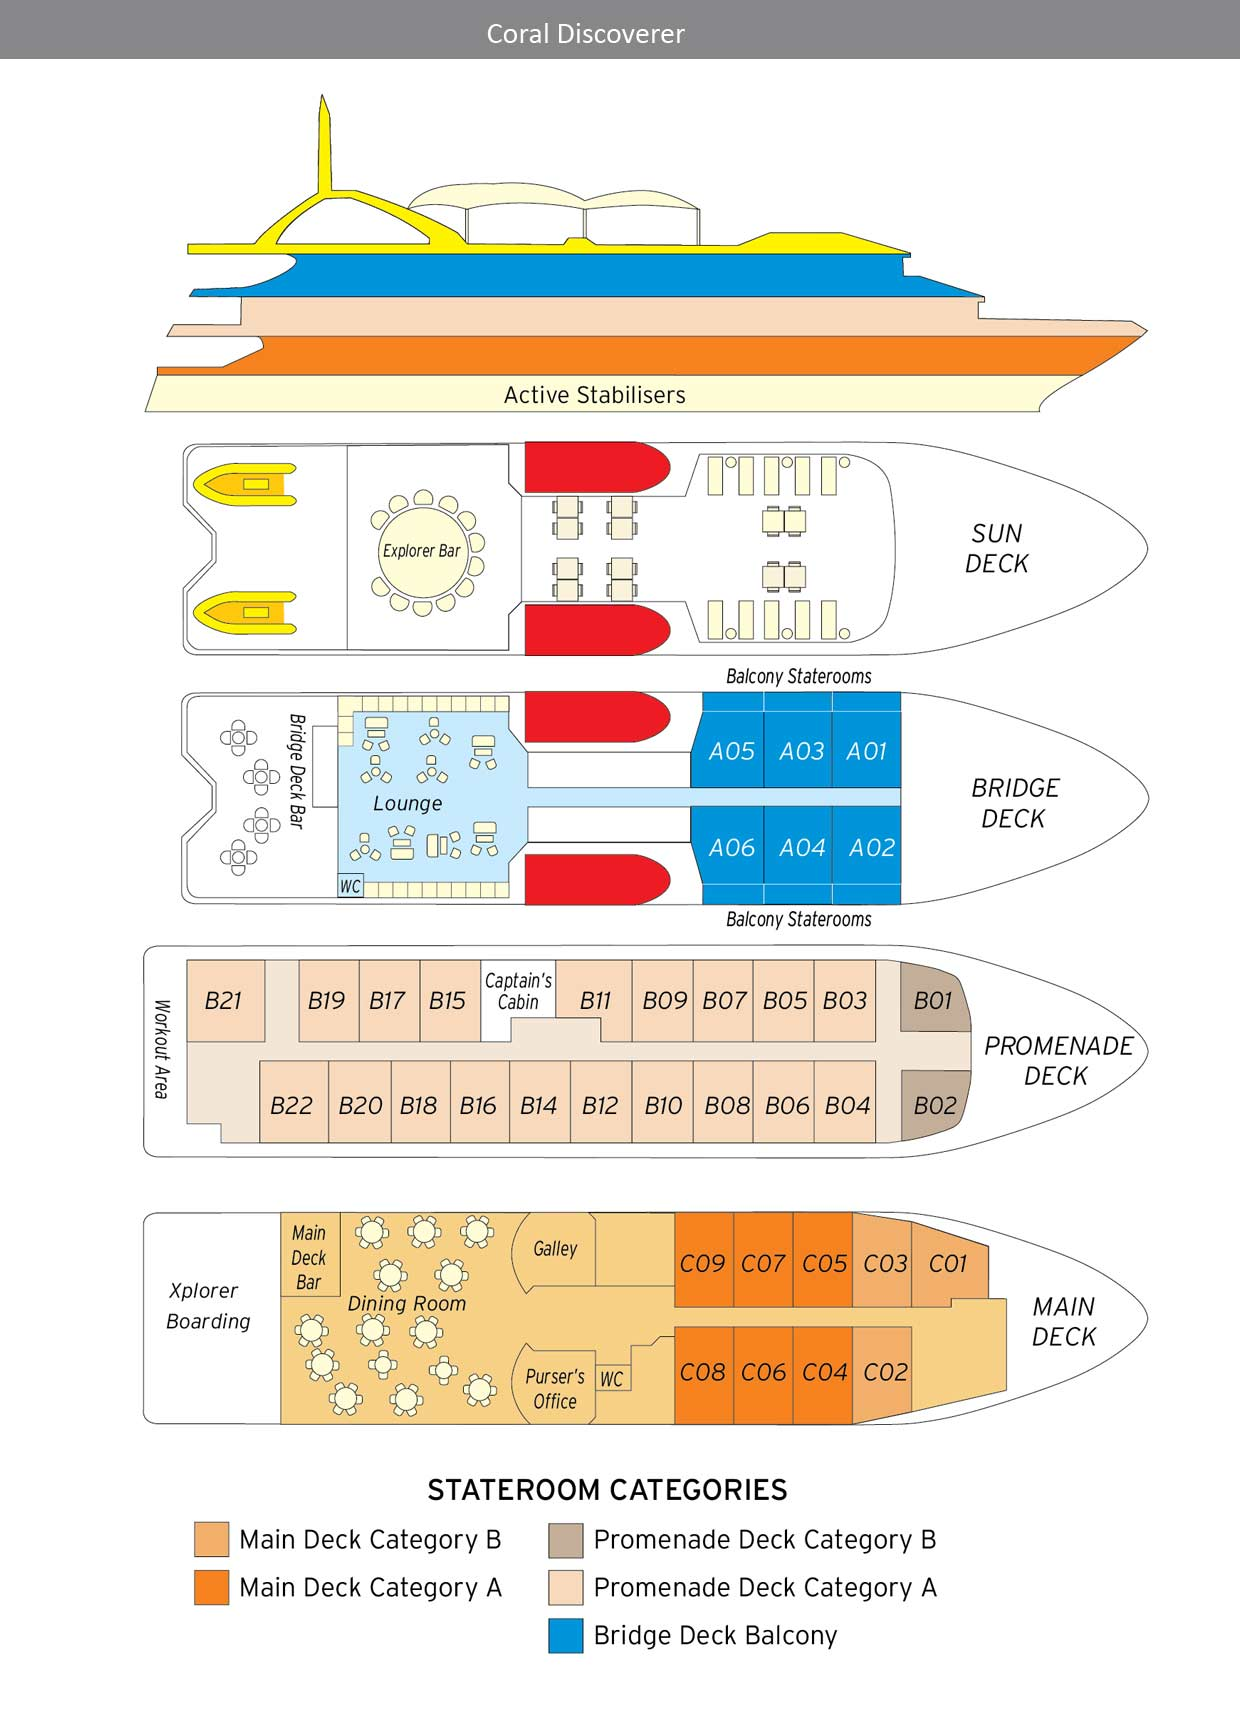 Deck Plan Coral Discoverer